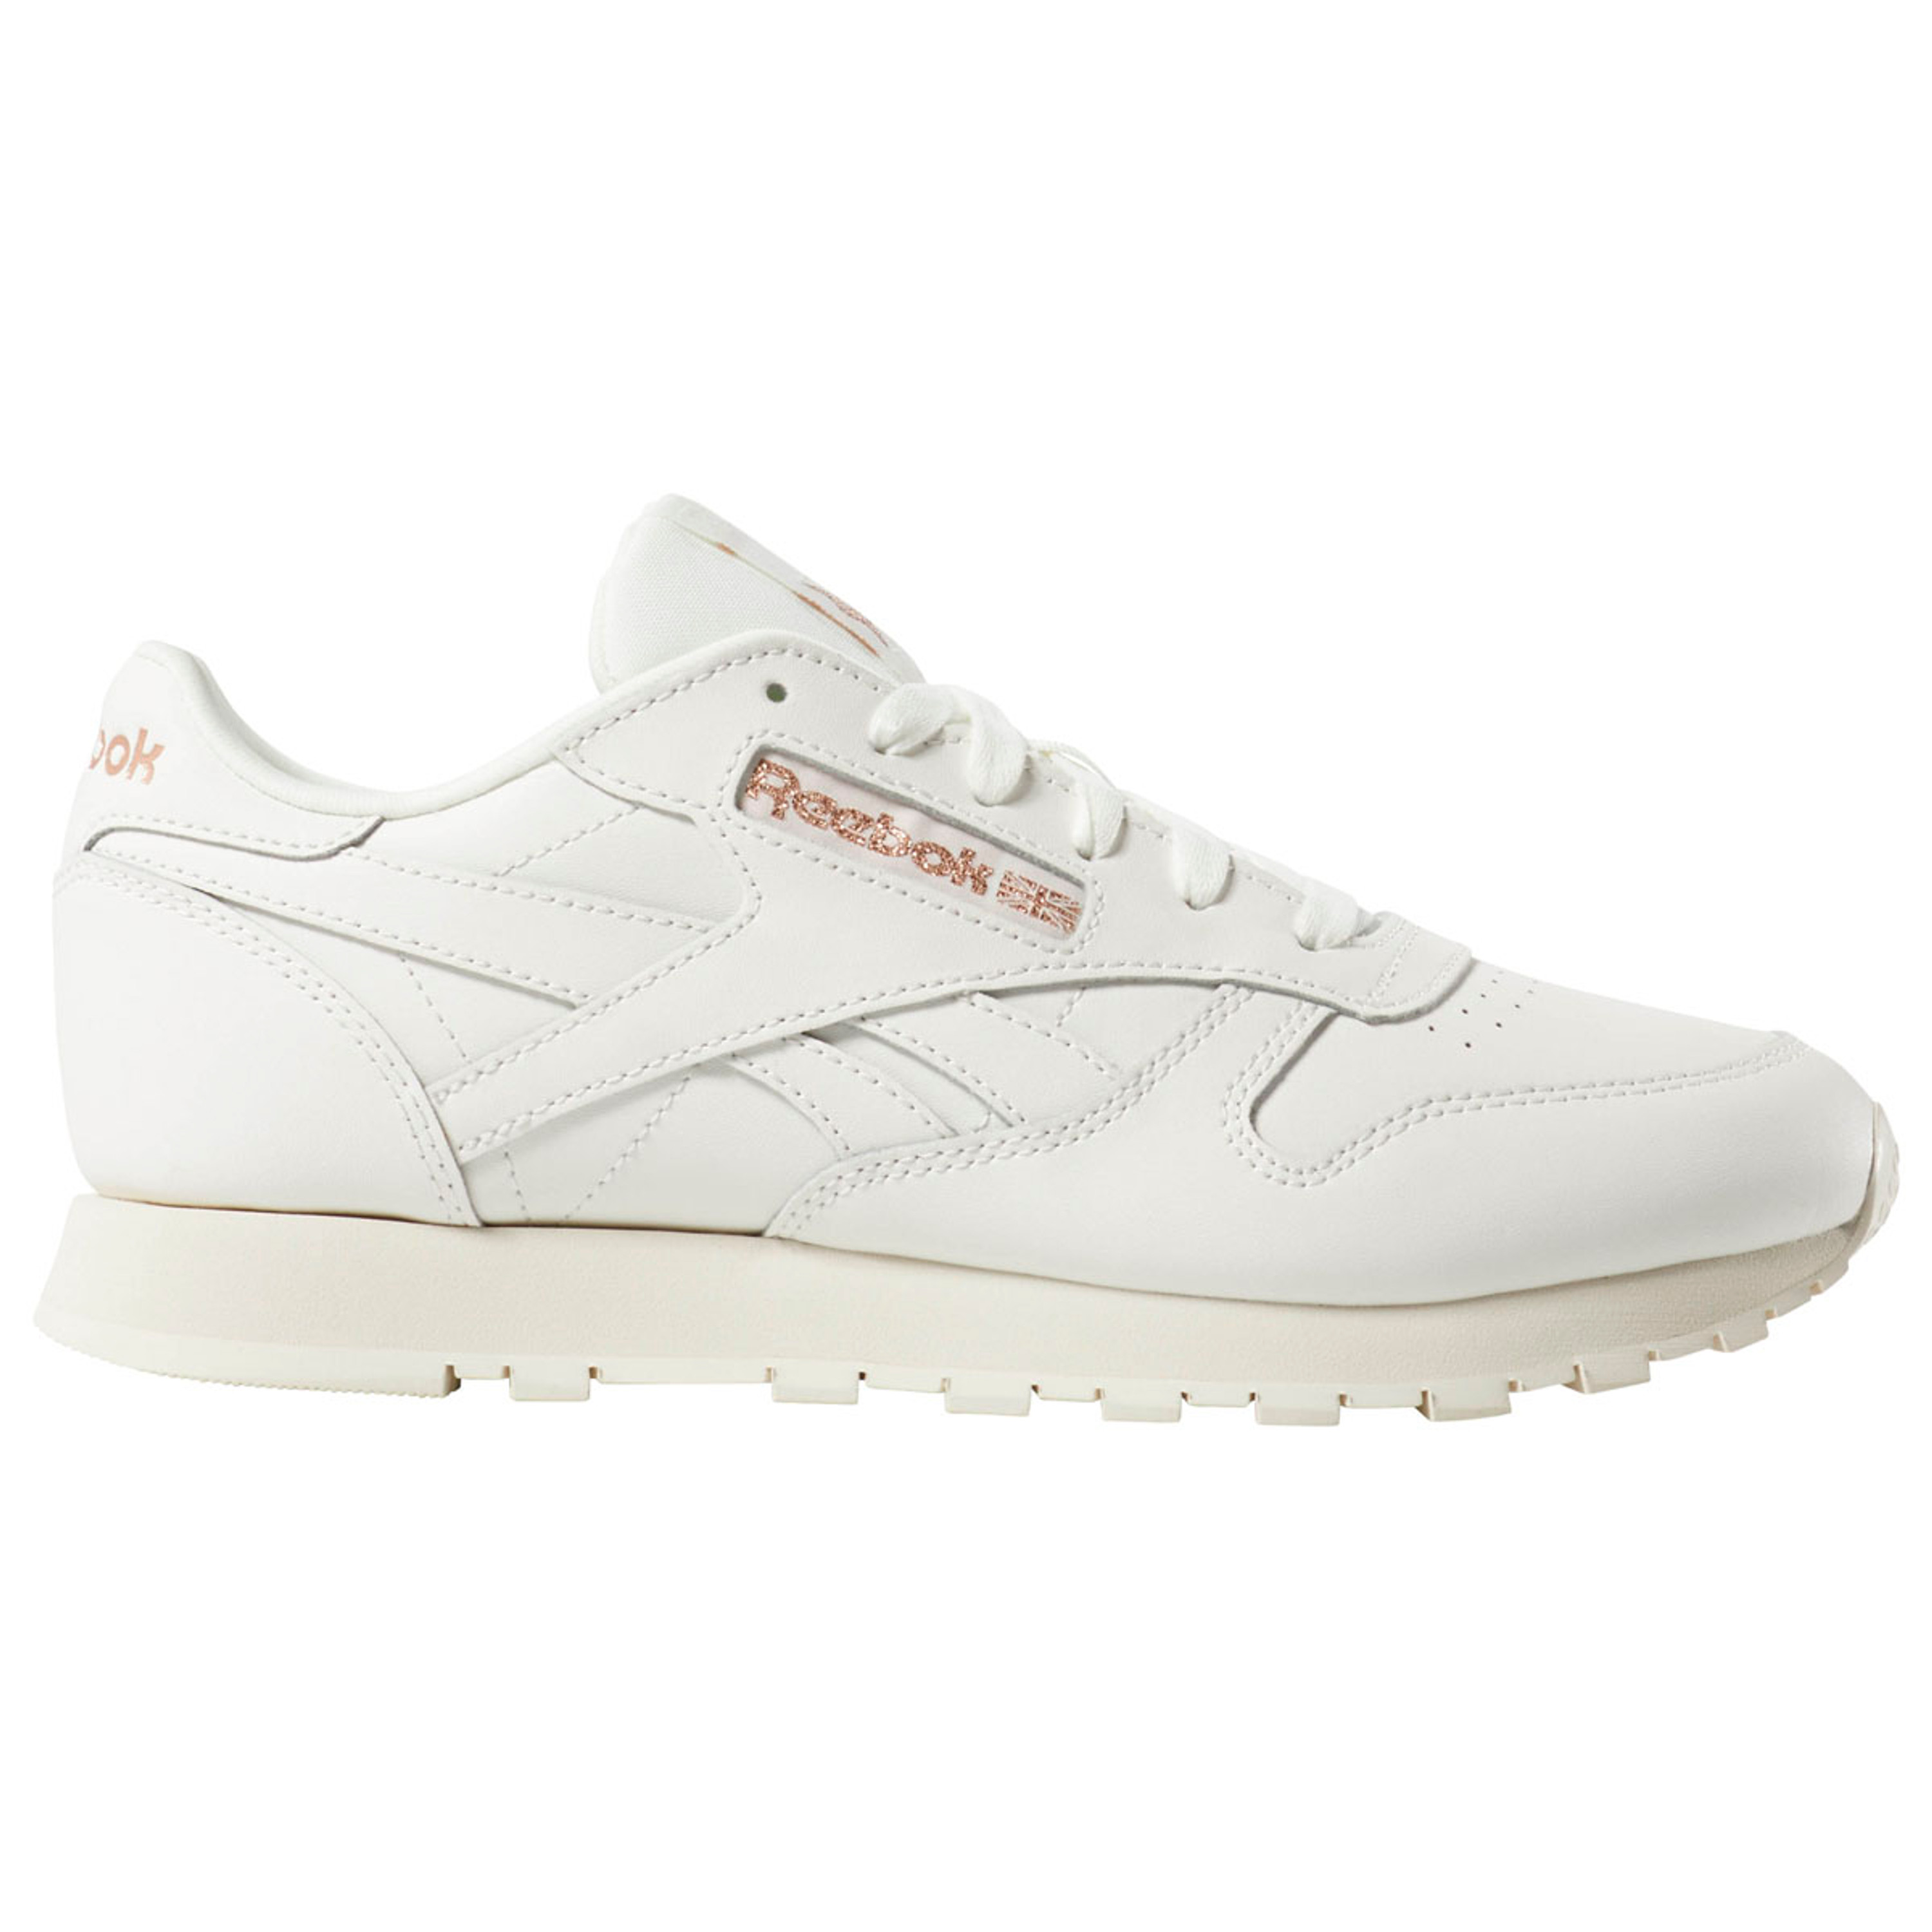 sports shoes d341a 57788 Reebok Classic Leather Retro & Vintage Sneakers für Damen in weiss